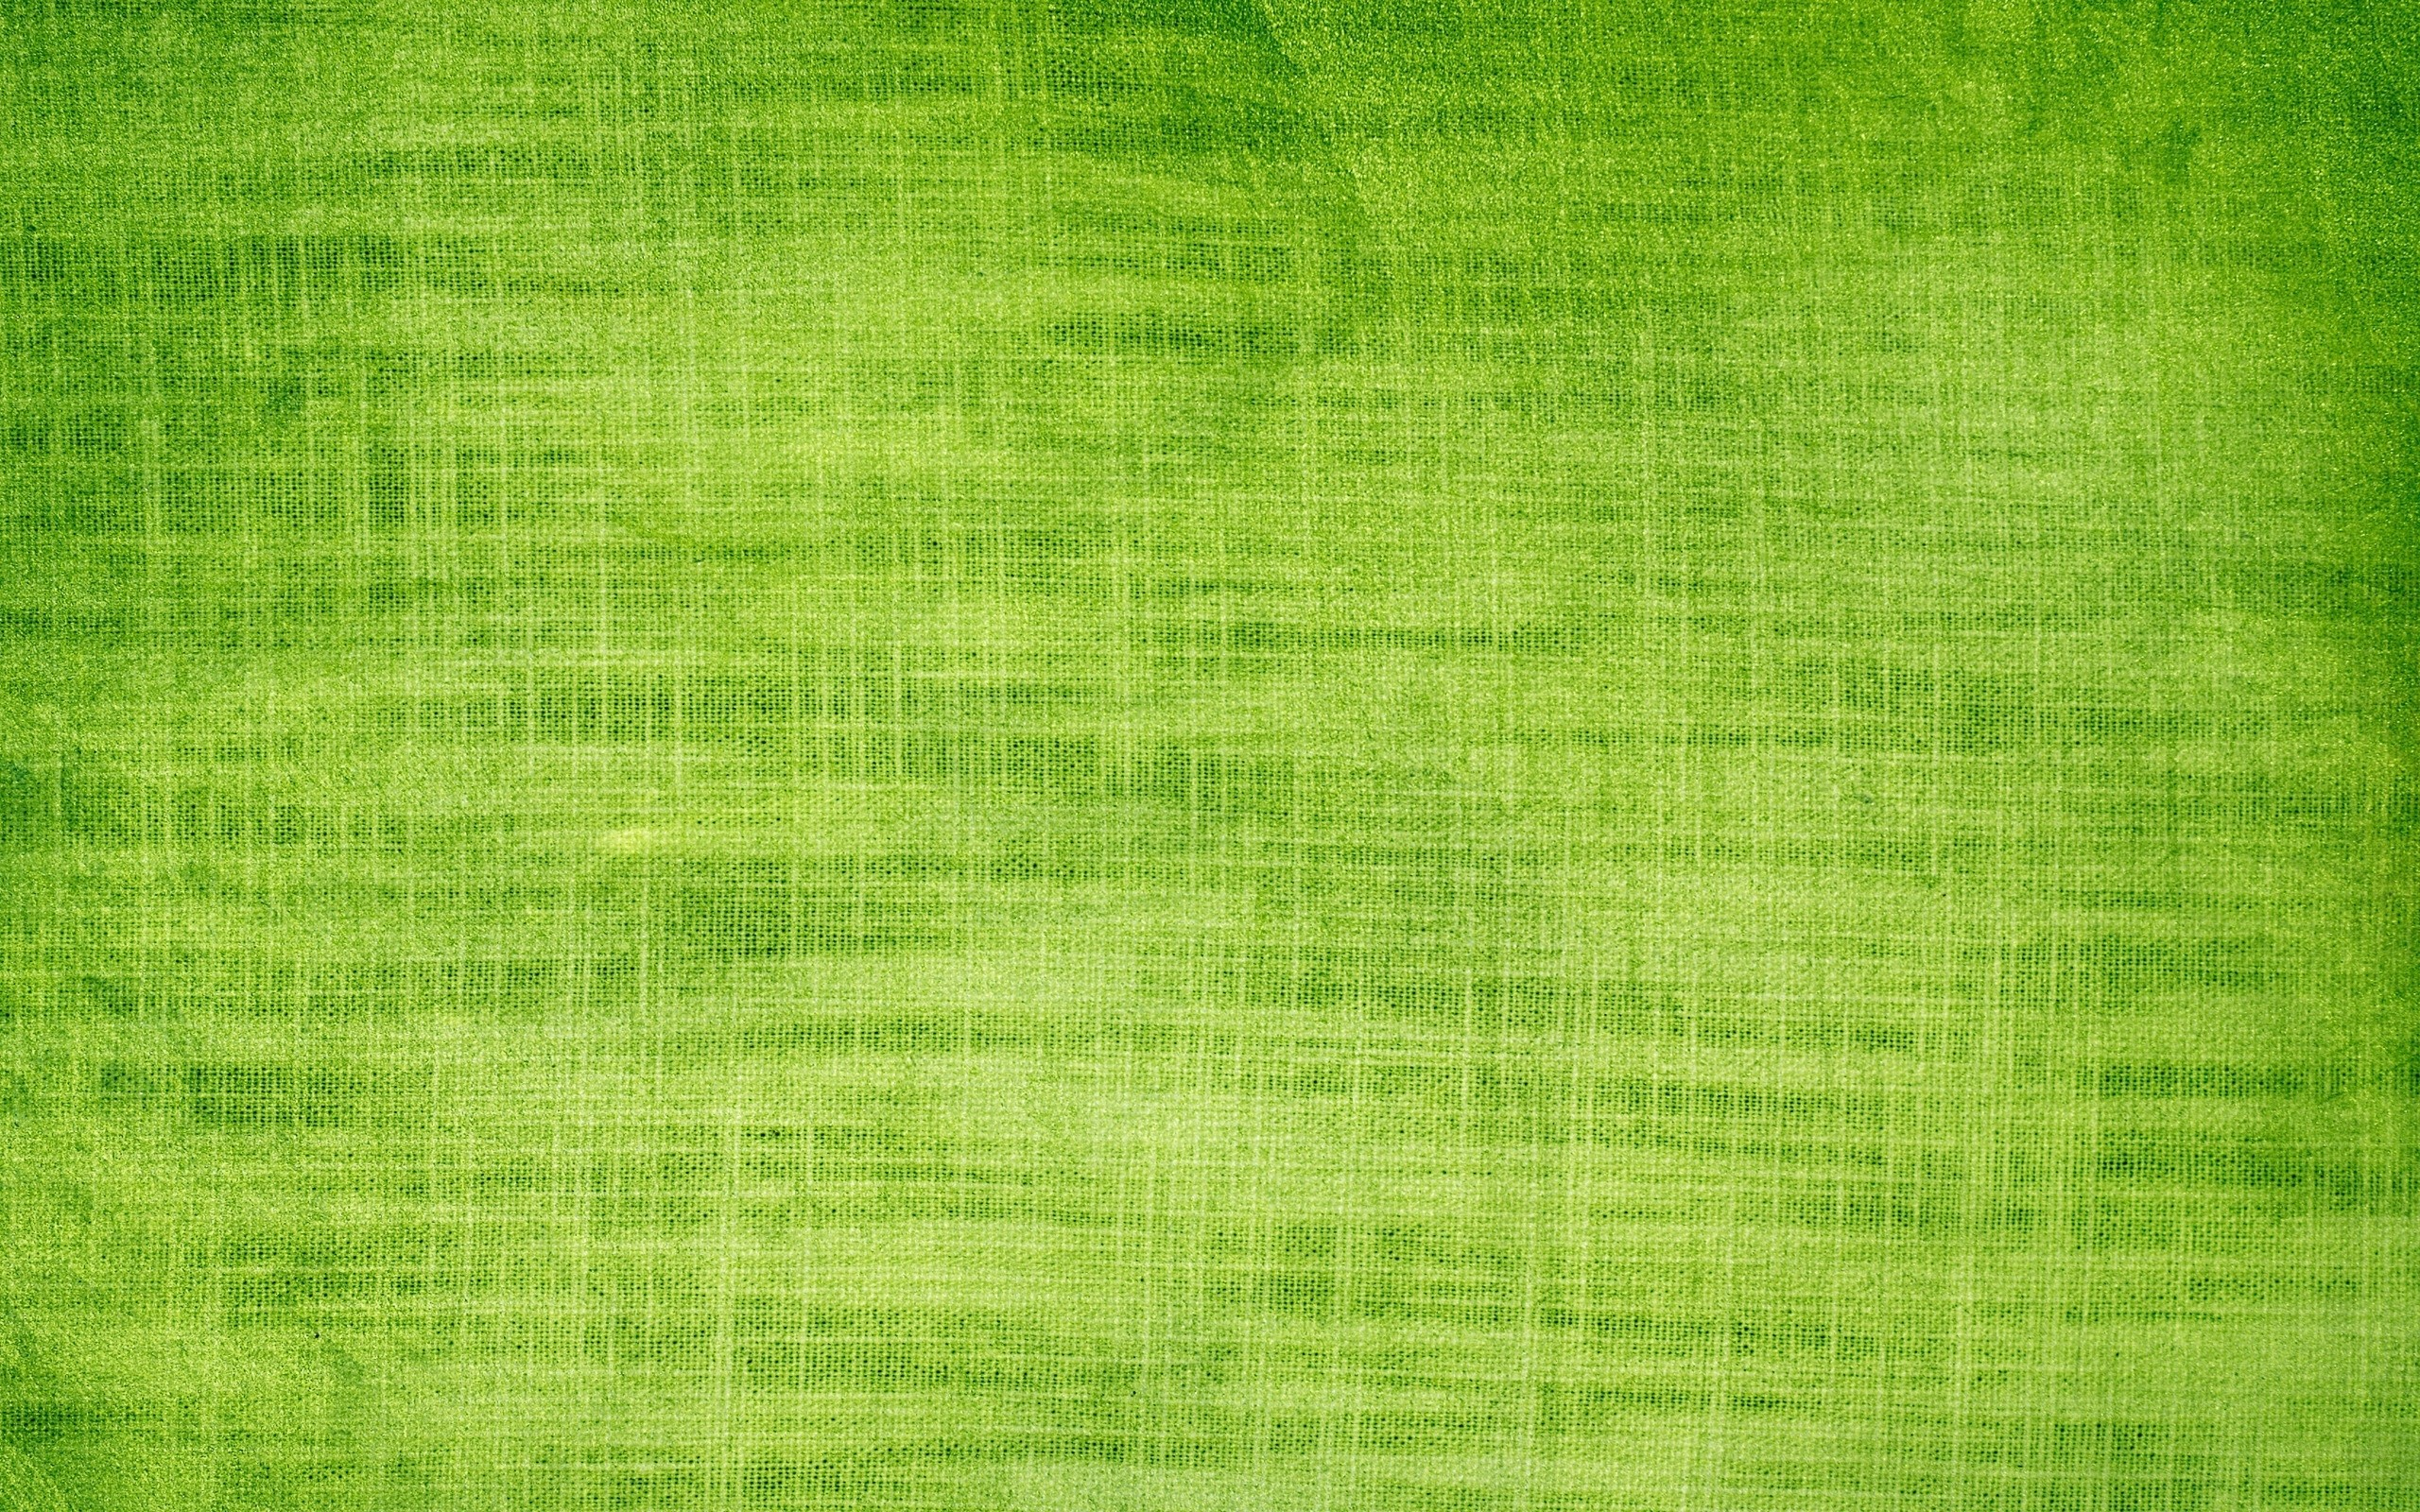 2560x1600 Green Bubbles. green background